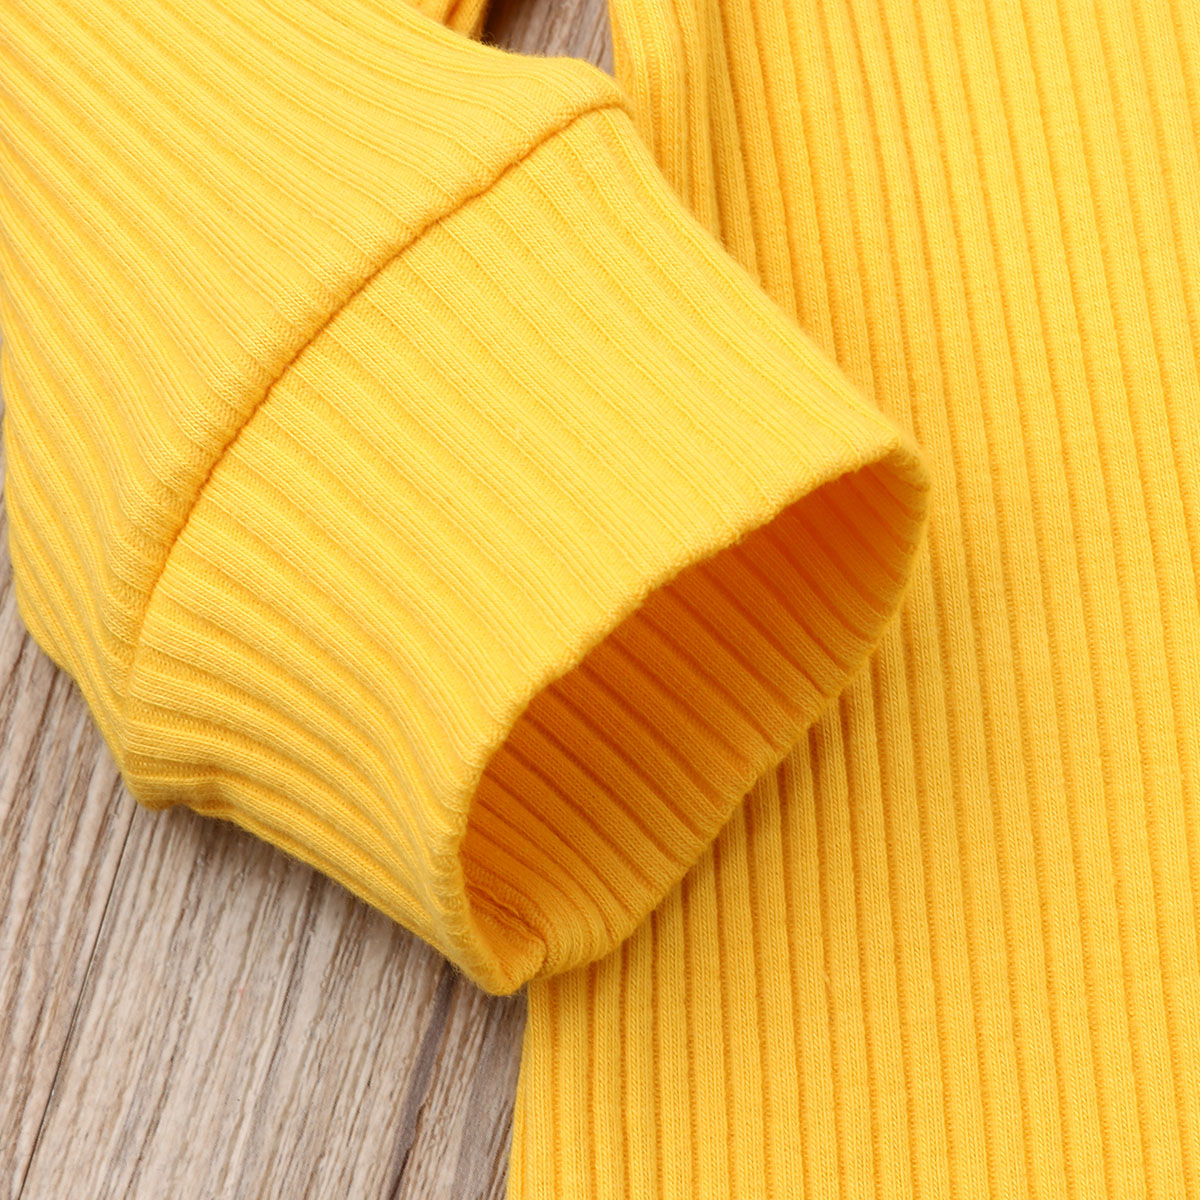 H23c3cb18c0cd476dab6dea17fa79797bX Spring Fall Newborn Baby Girl Boy Clothes Long Sleeve Knitted Romper + Headband Jumpsuit 2PCS Outfit 0-24M